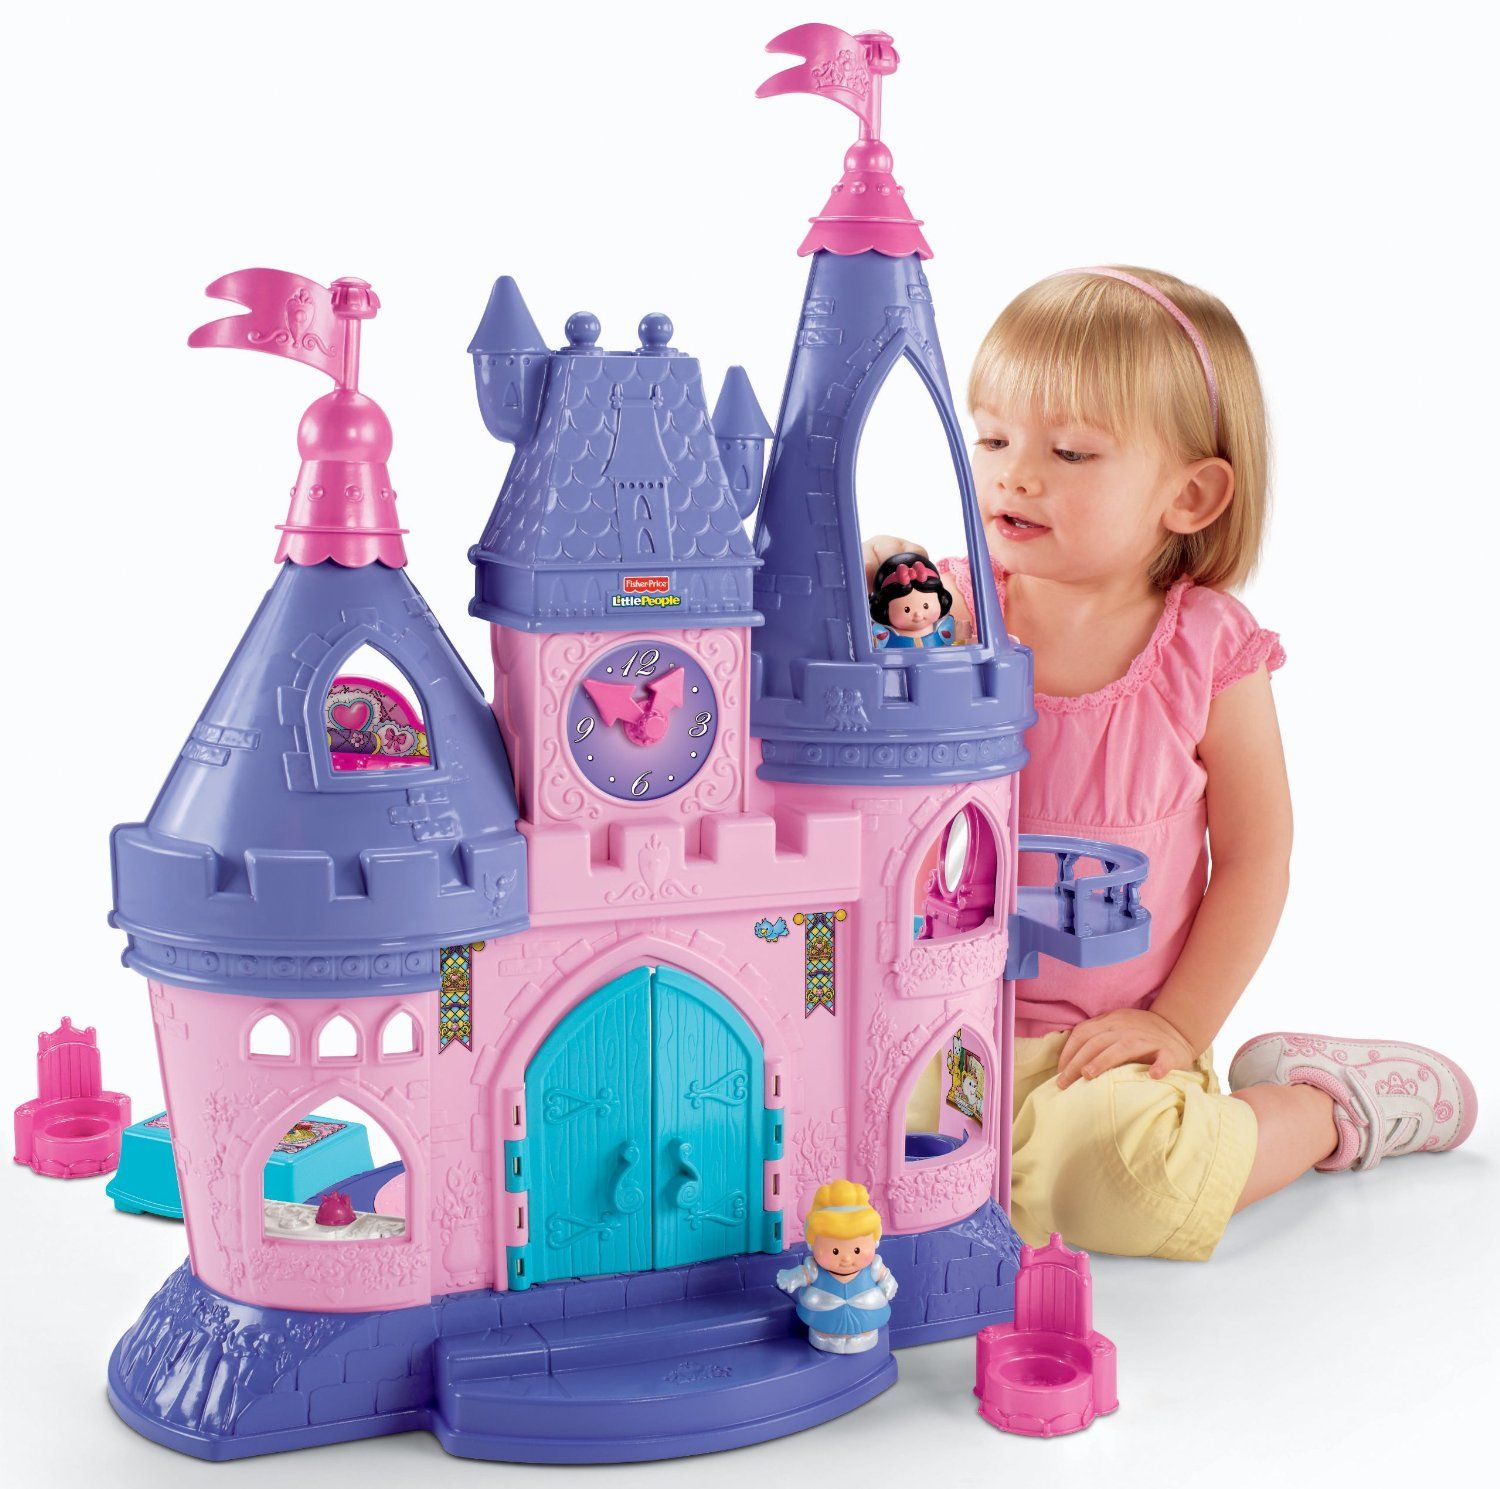 Top top toys for 2 Year Olds Images